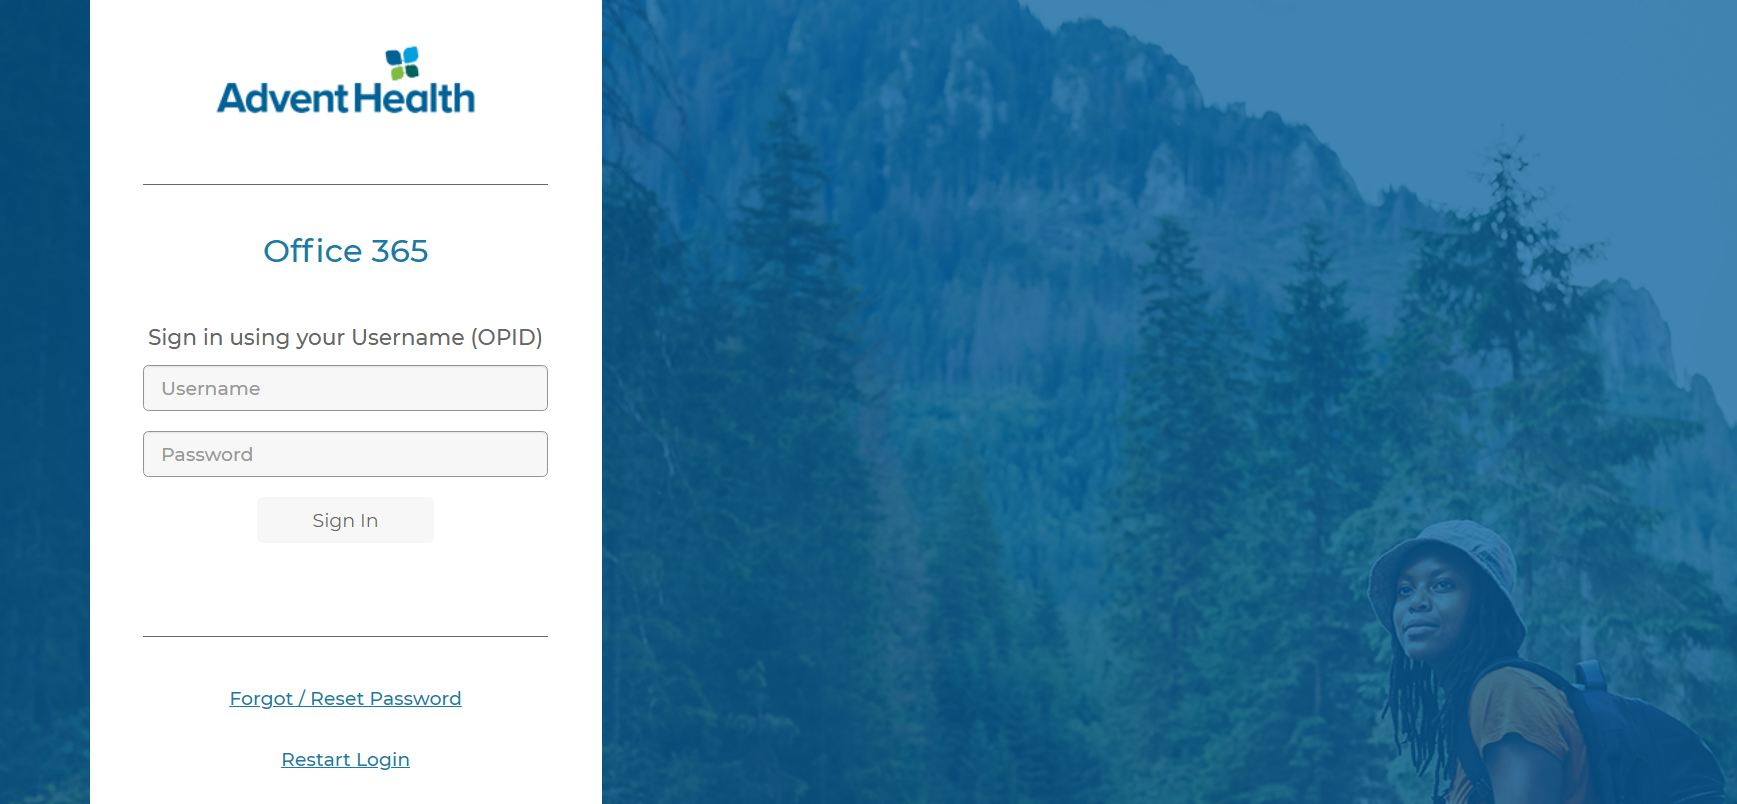 Adventhealth Employee Email Login